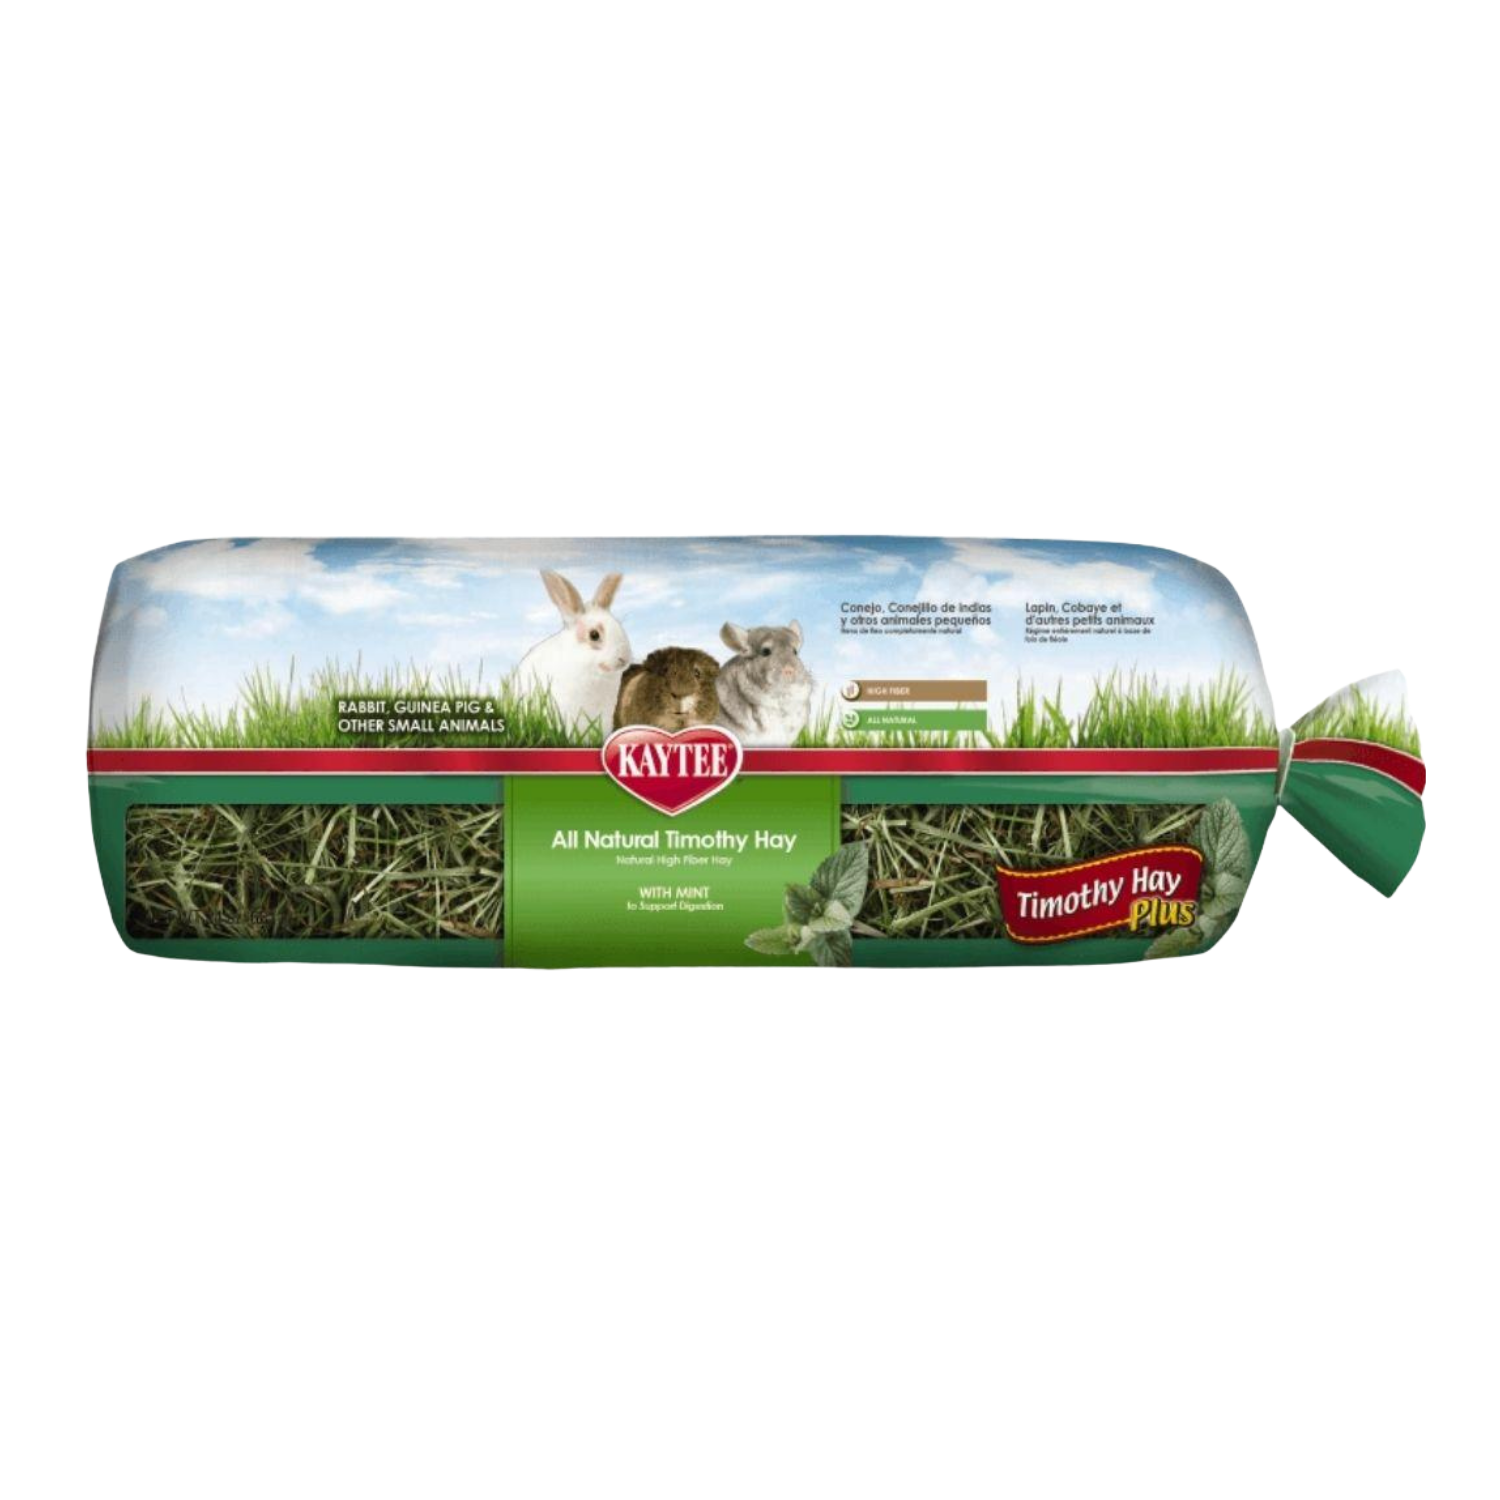 Kaytee Timothy Hay Plus (Mint) Mini Bale - 680g